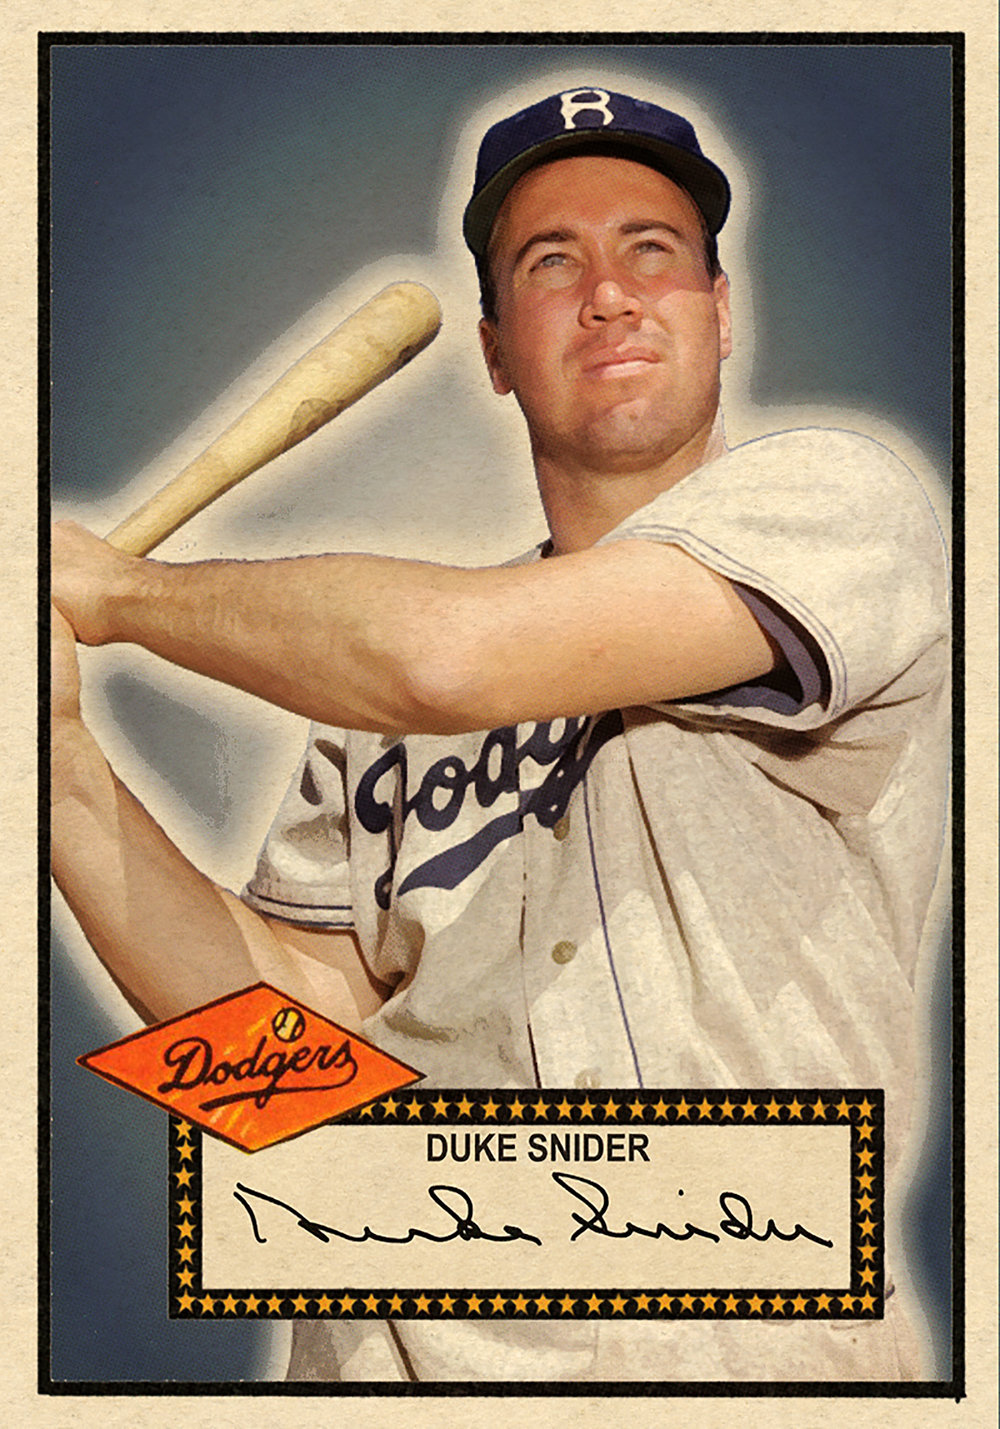 1952 BASEBALL STARS SERIES #100 DUKE SNIDER 3/6/17 Auction Closes at $293.00 USD - Current Poulation of 1